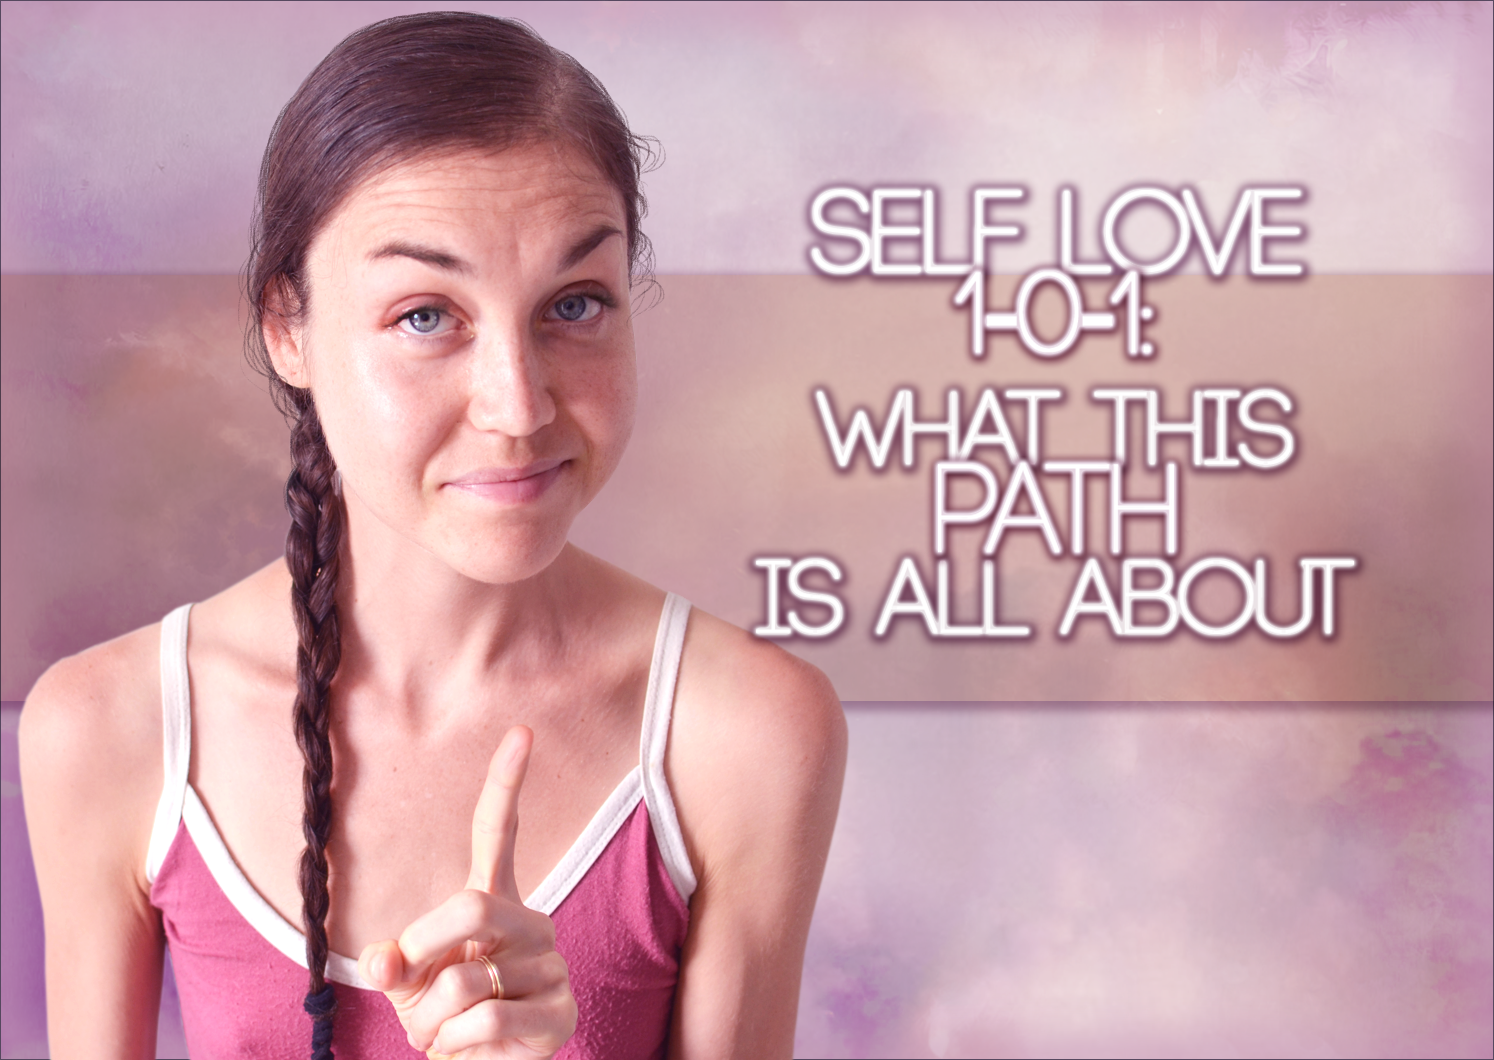 Self Love 1-0-1: What This Path Is All About